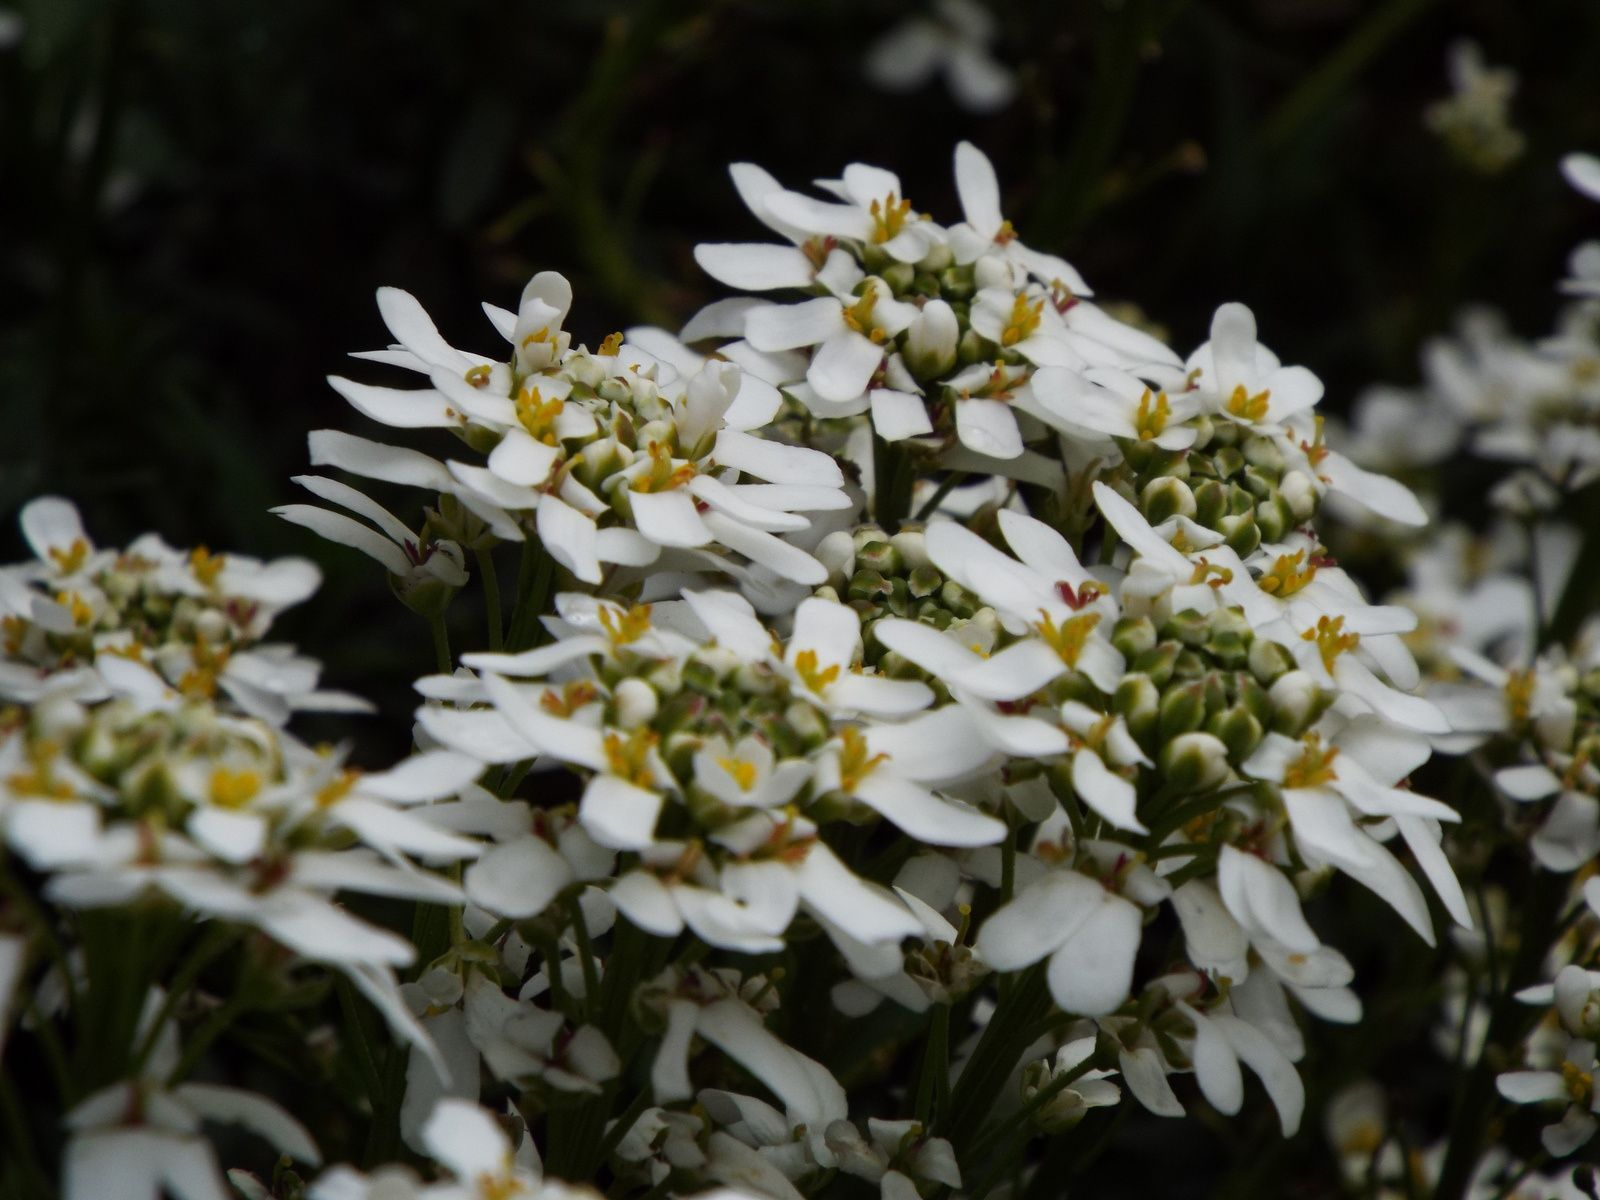 Iberis sempervirens